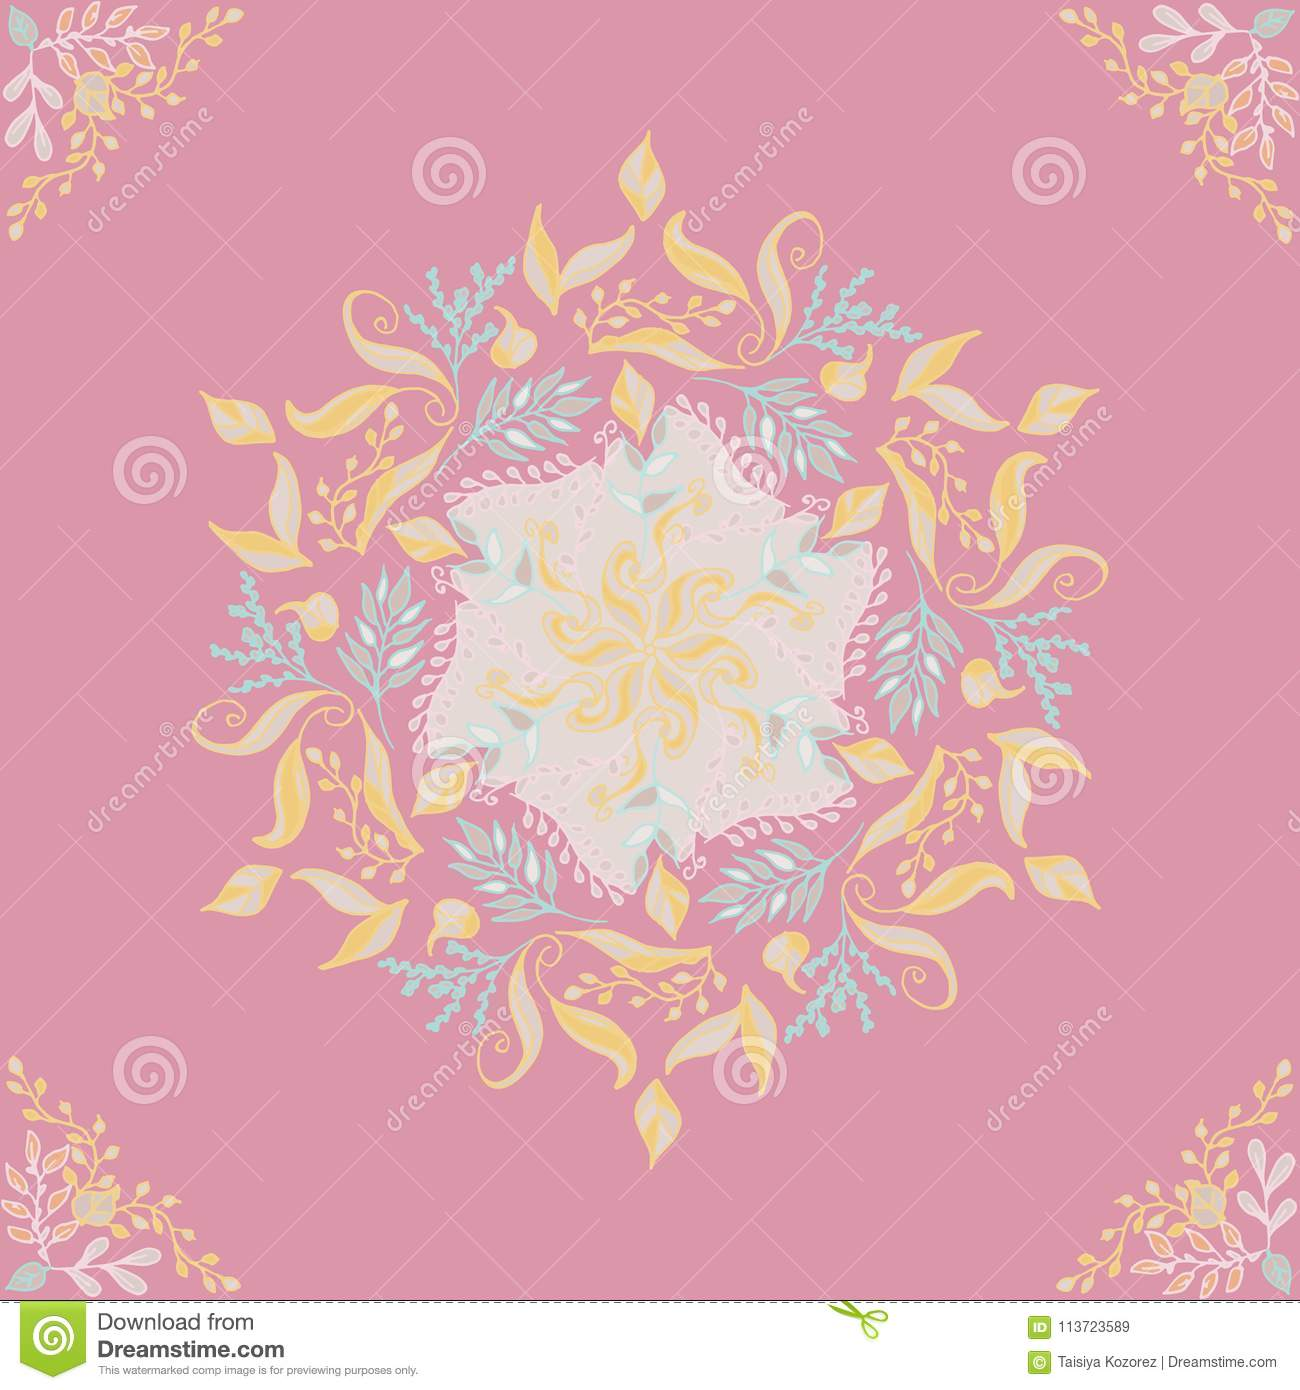 Mandala floral pattern colored on a pink background ethno motive, illustration, eps 10.